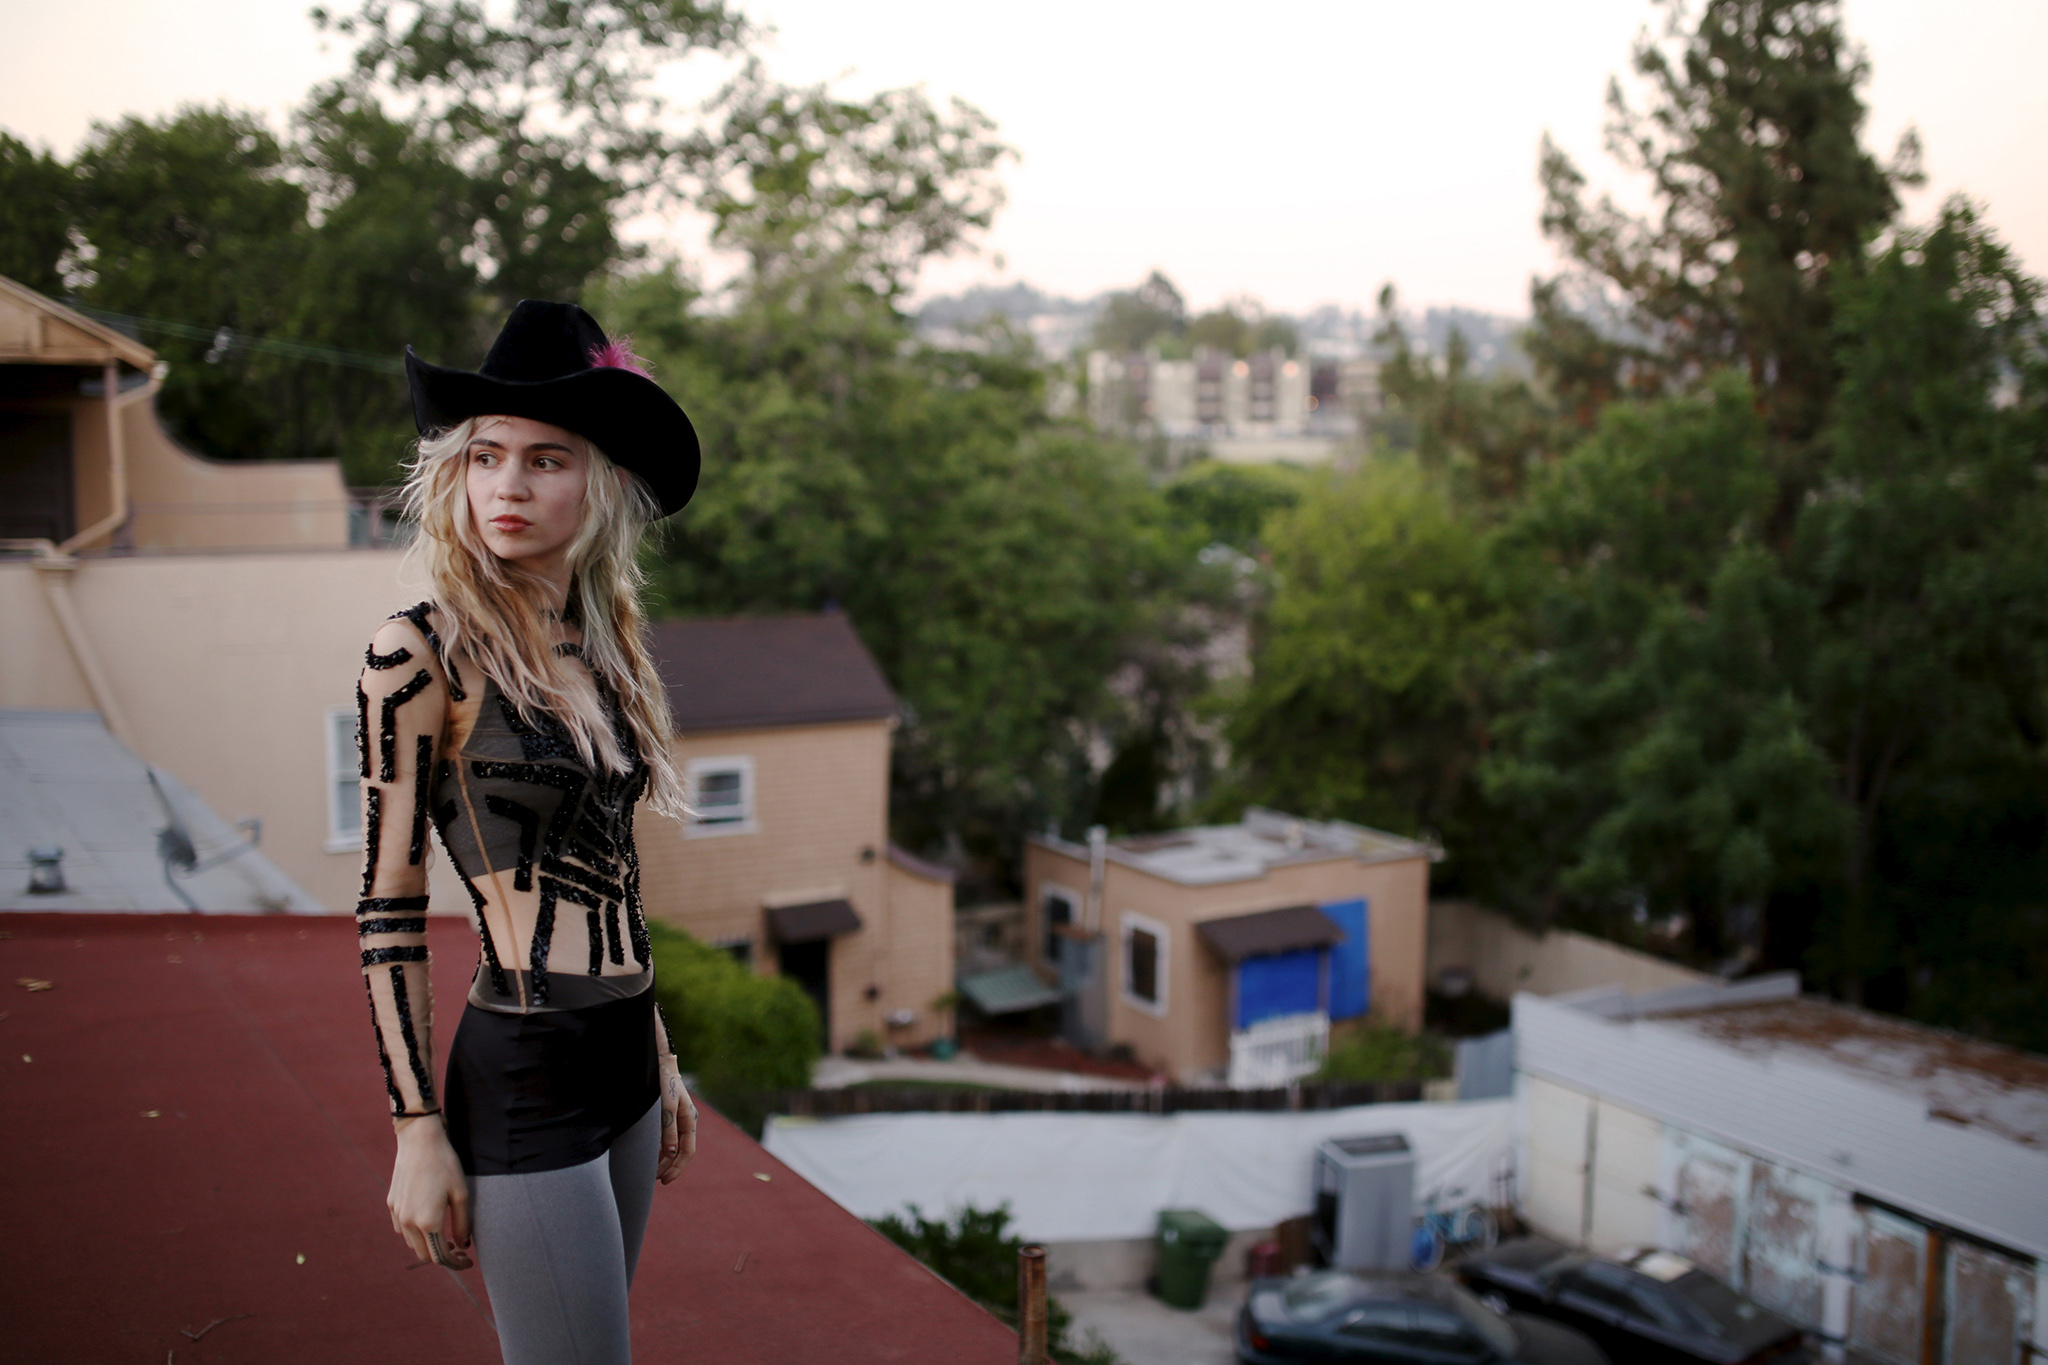 Grimes puts together 'Bedtime Mix', featuring Portishead and Aphex Twin